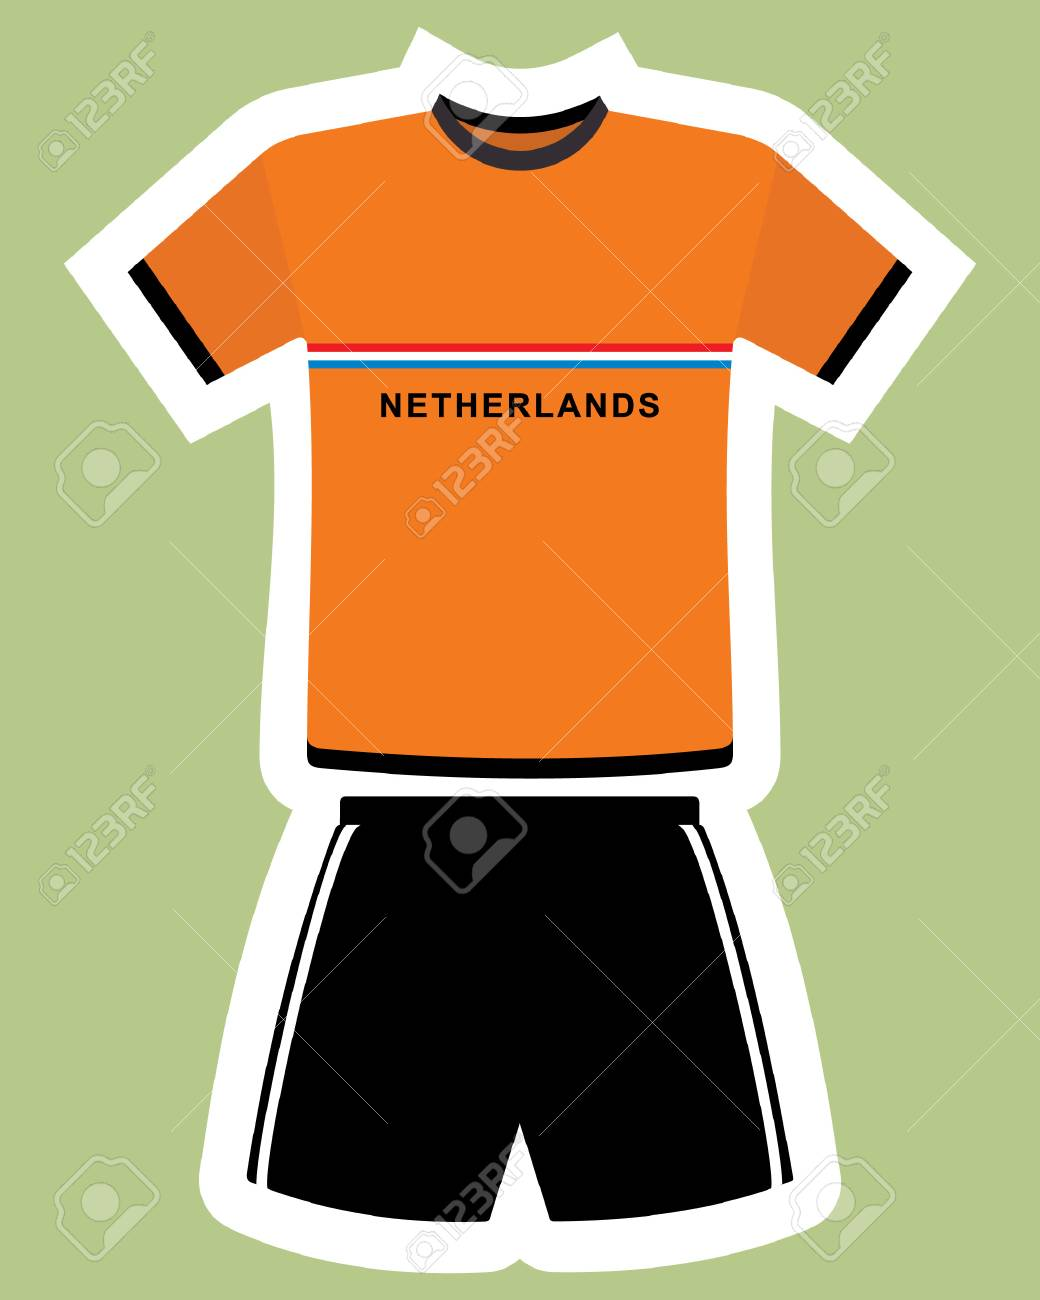 df865a27f Abstract netherlands football jersey. Stock Vector - 85878871